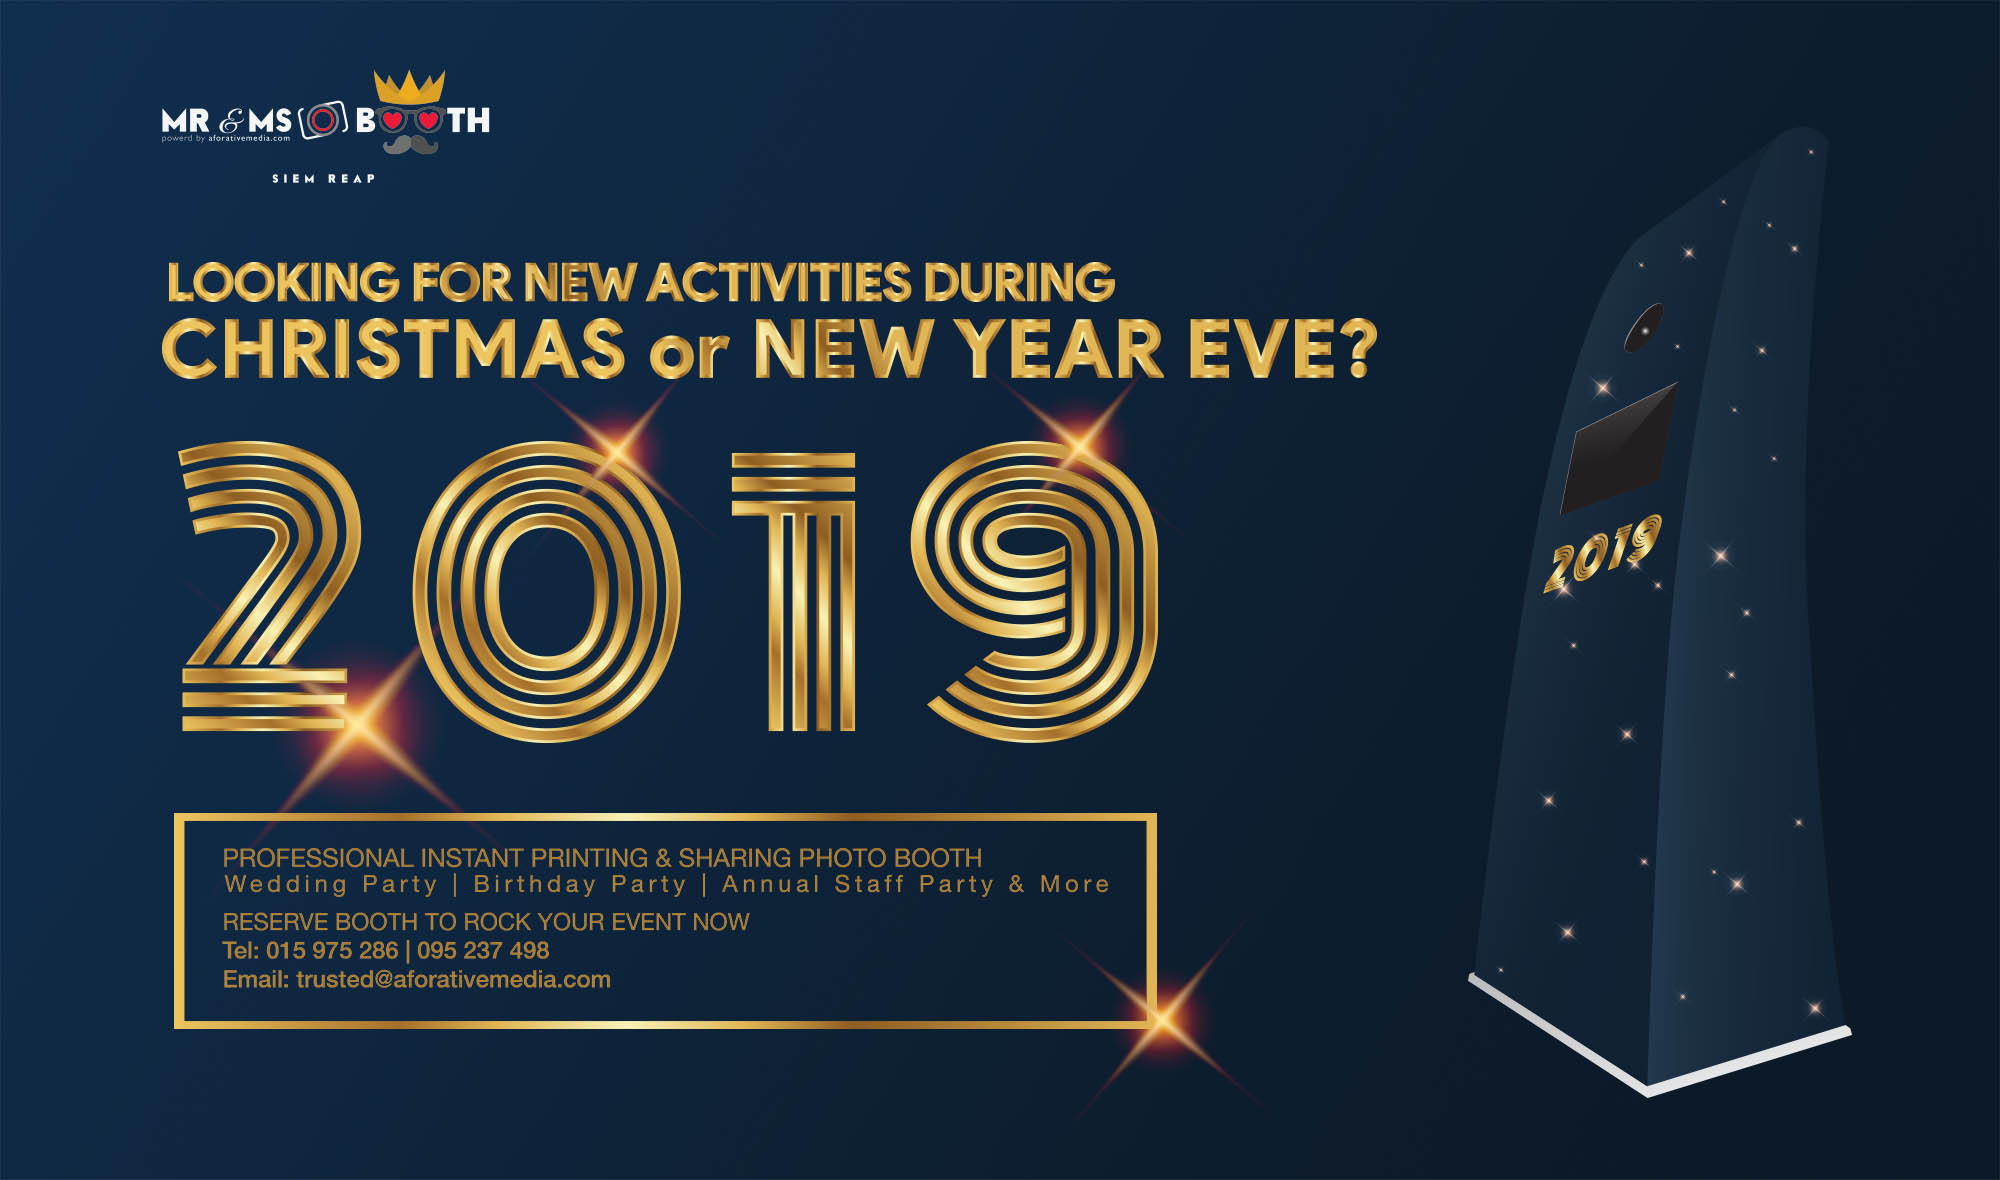 activities for new year 2019 - photo booth